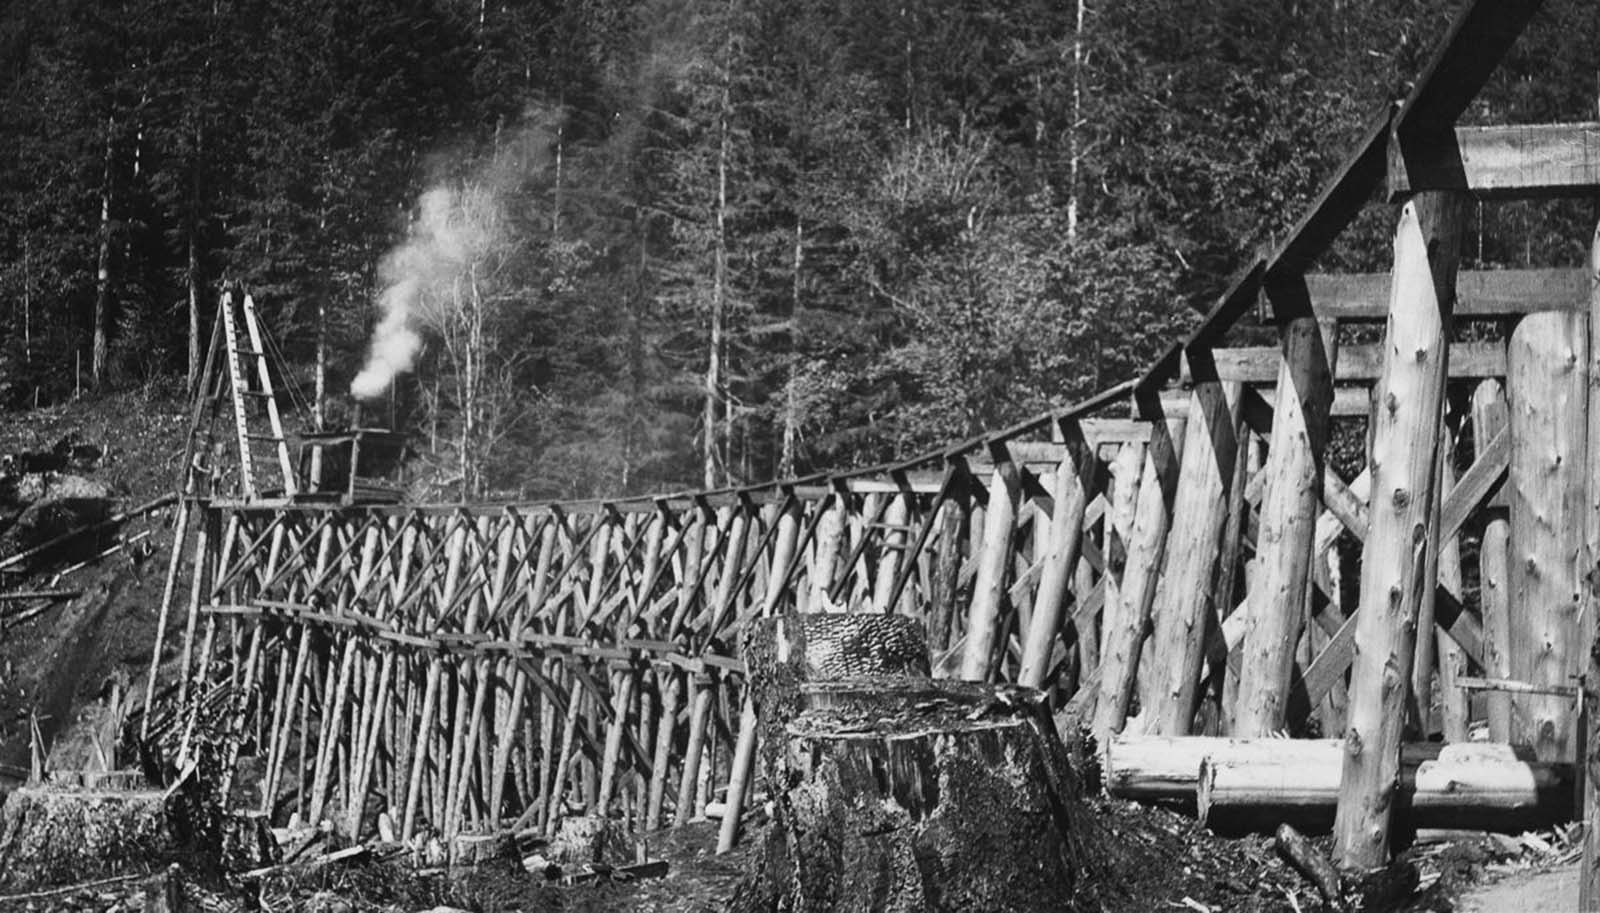 A trestle bridge under construction. 1930.